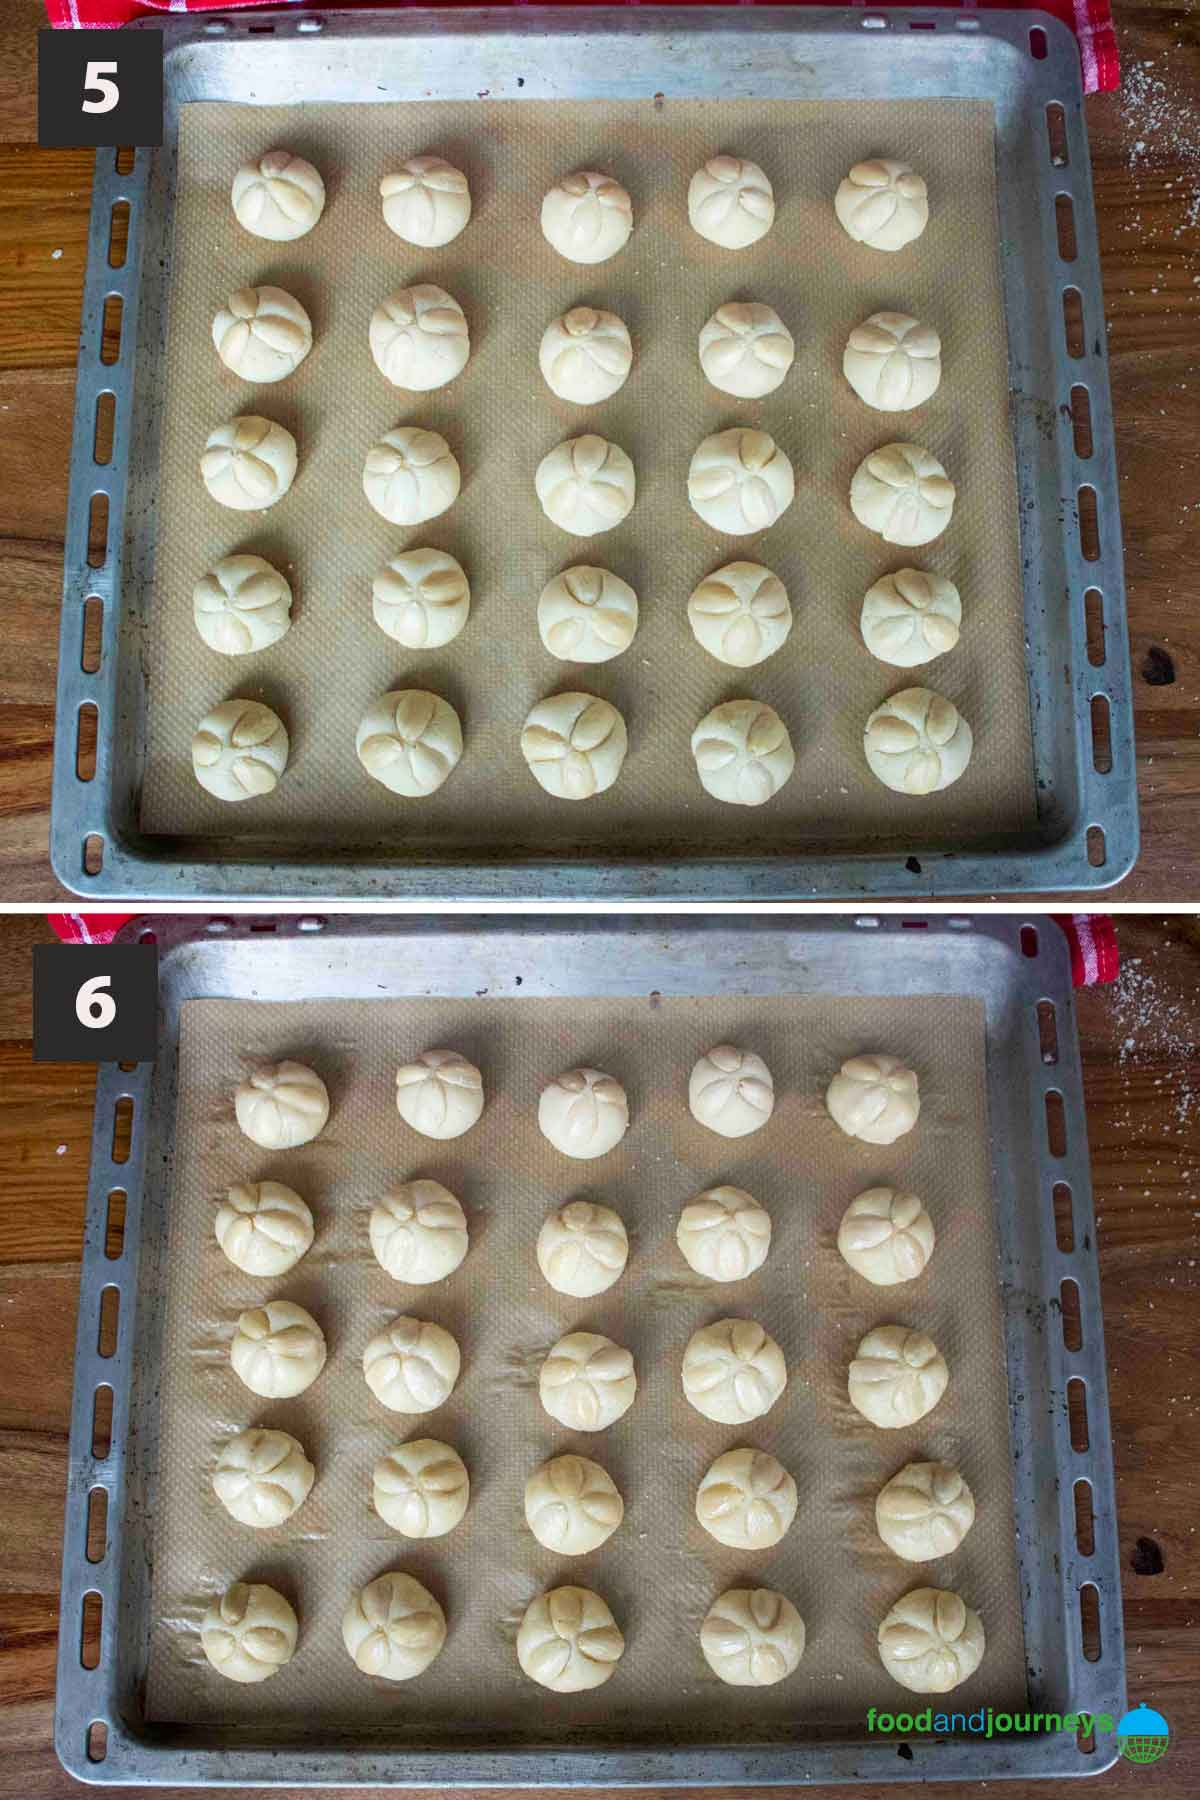 Latest (Aug 2021) second part of a collage of images showing the step by step process of making marzipan cookies for Christmas.